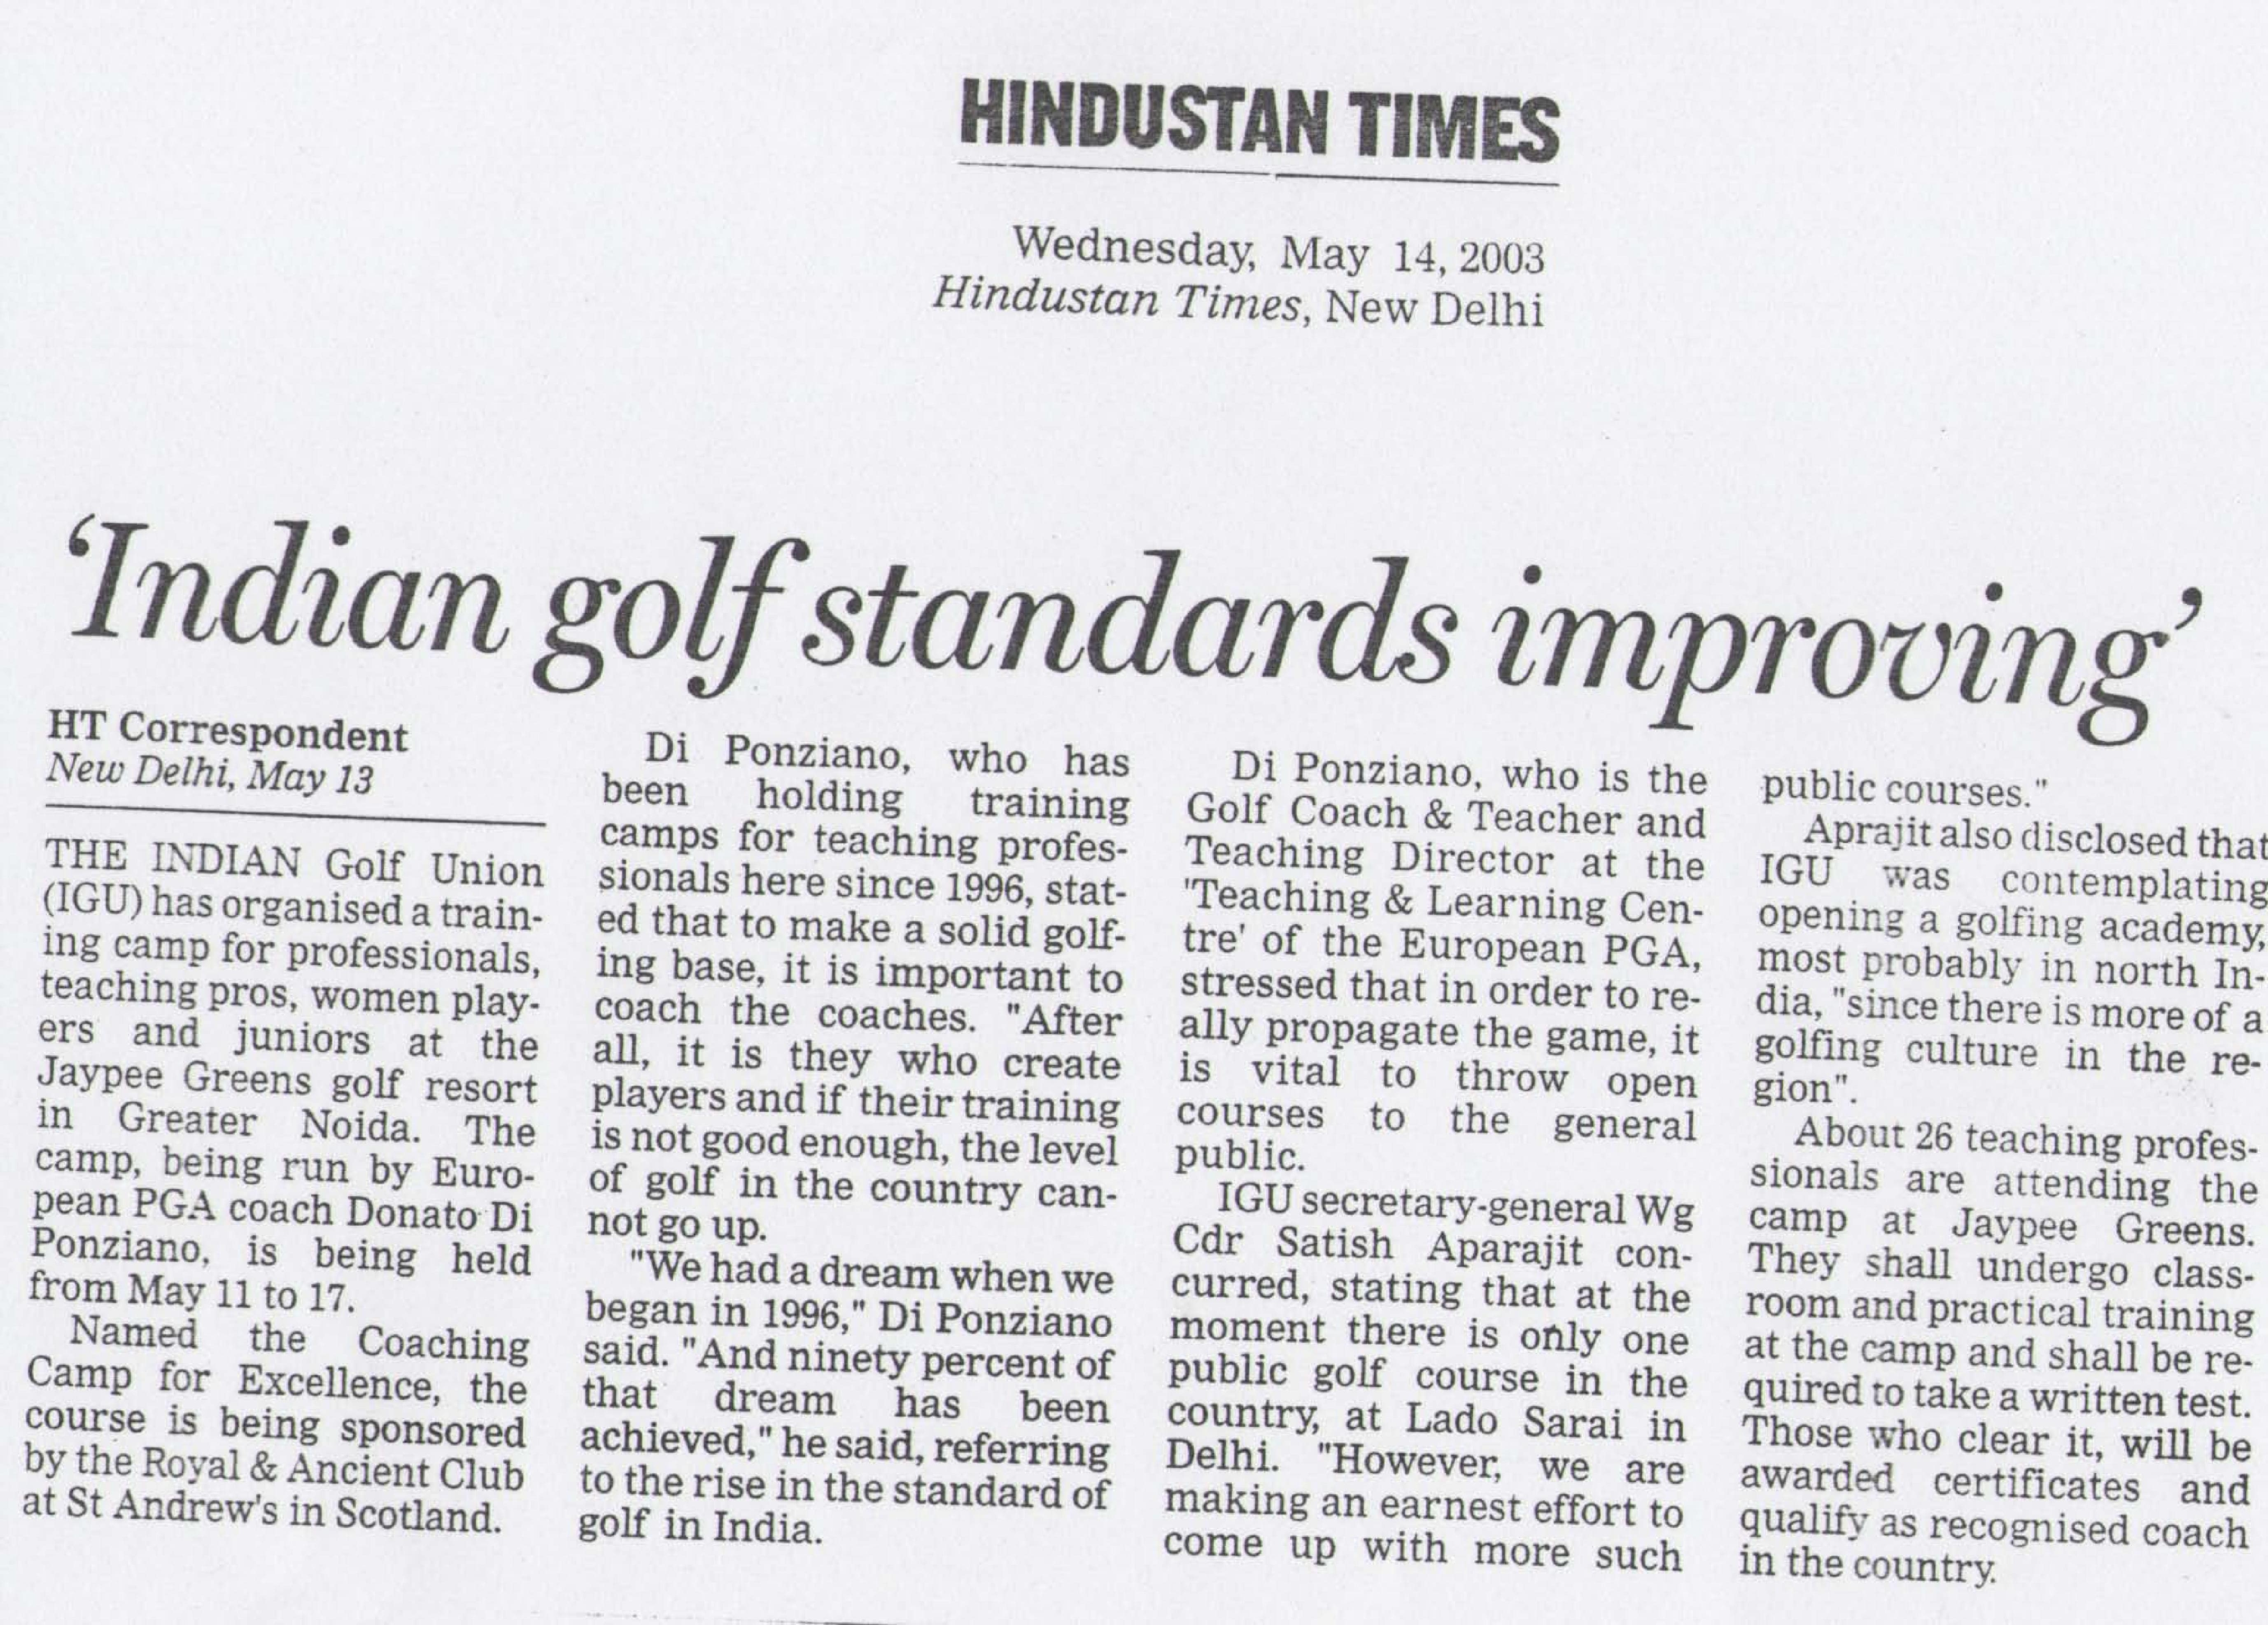 'Indian golf standards improving'